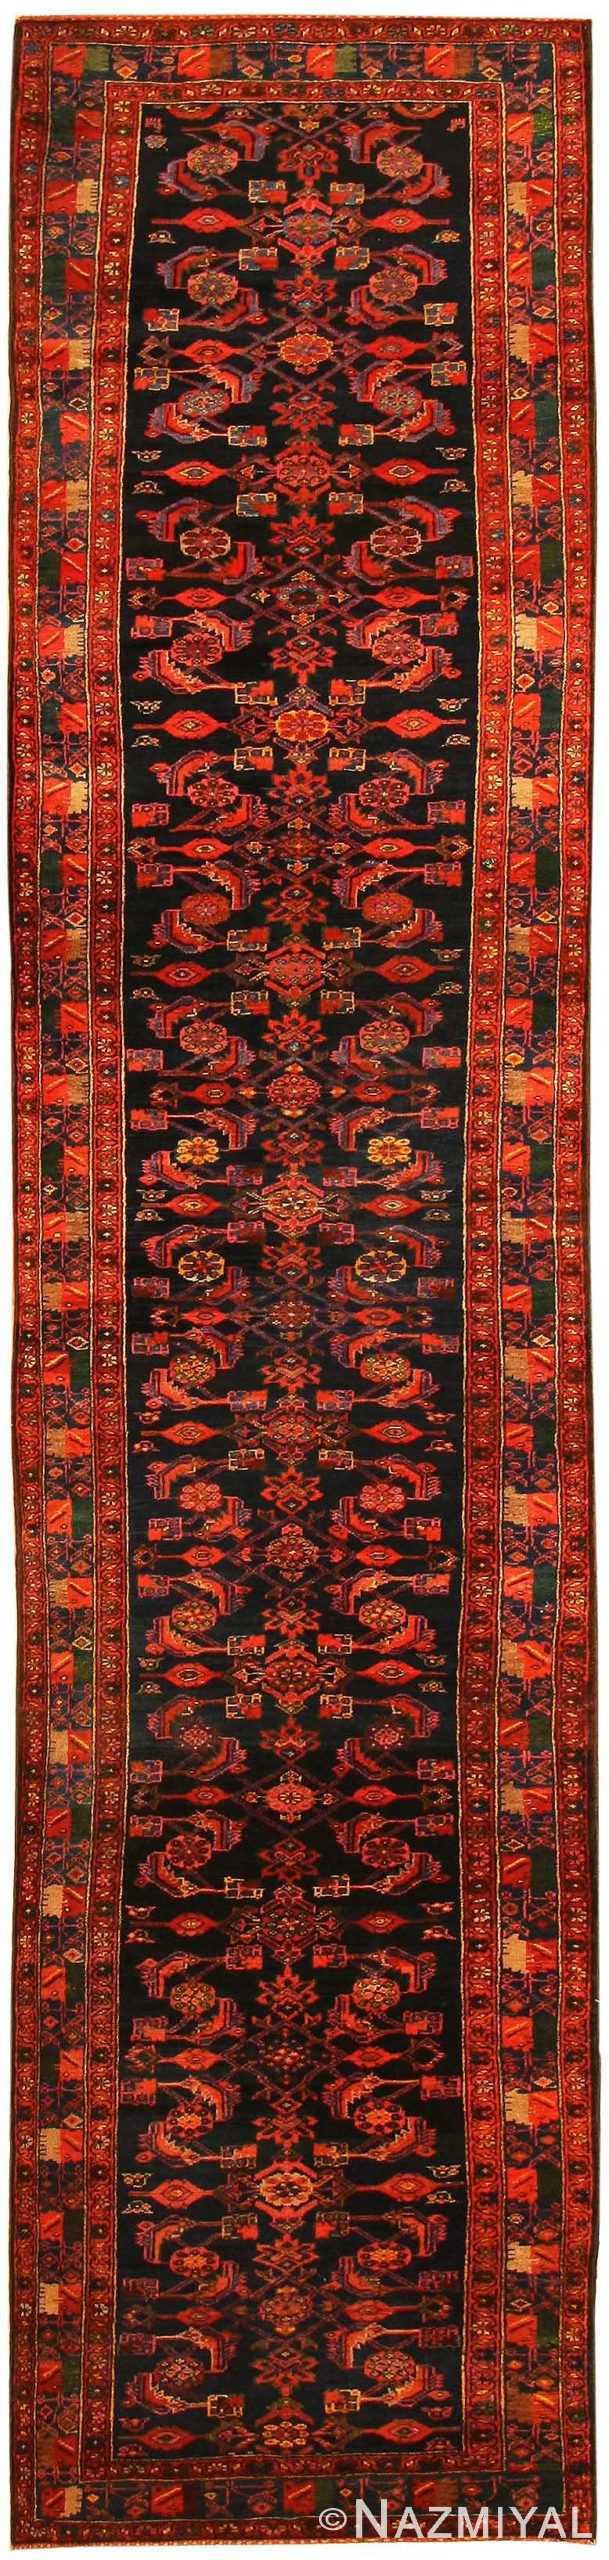 Antique Hamedan Persian Rug 43844 Detail/Large View - By Nazmiyal